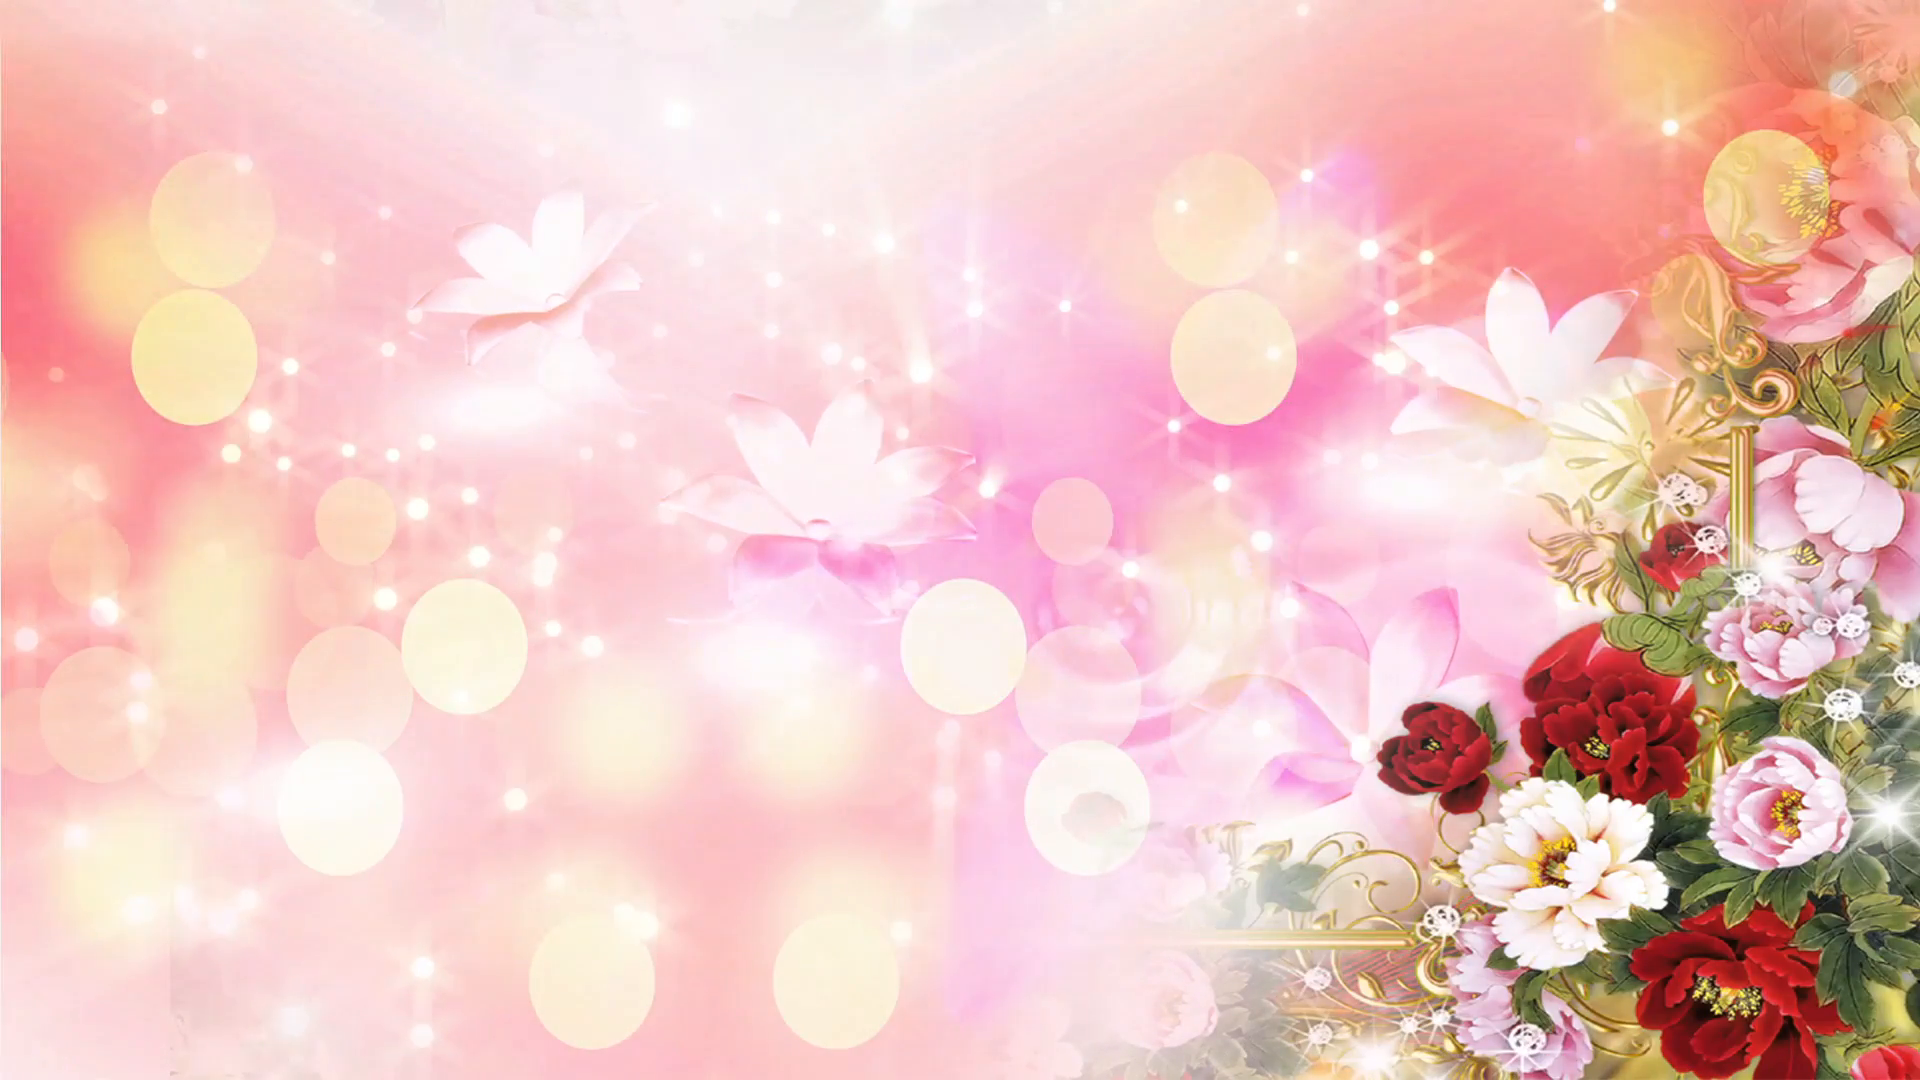 Wedding Background Images Png - Wedding Background Png images collection for free download ...